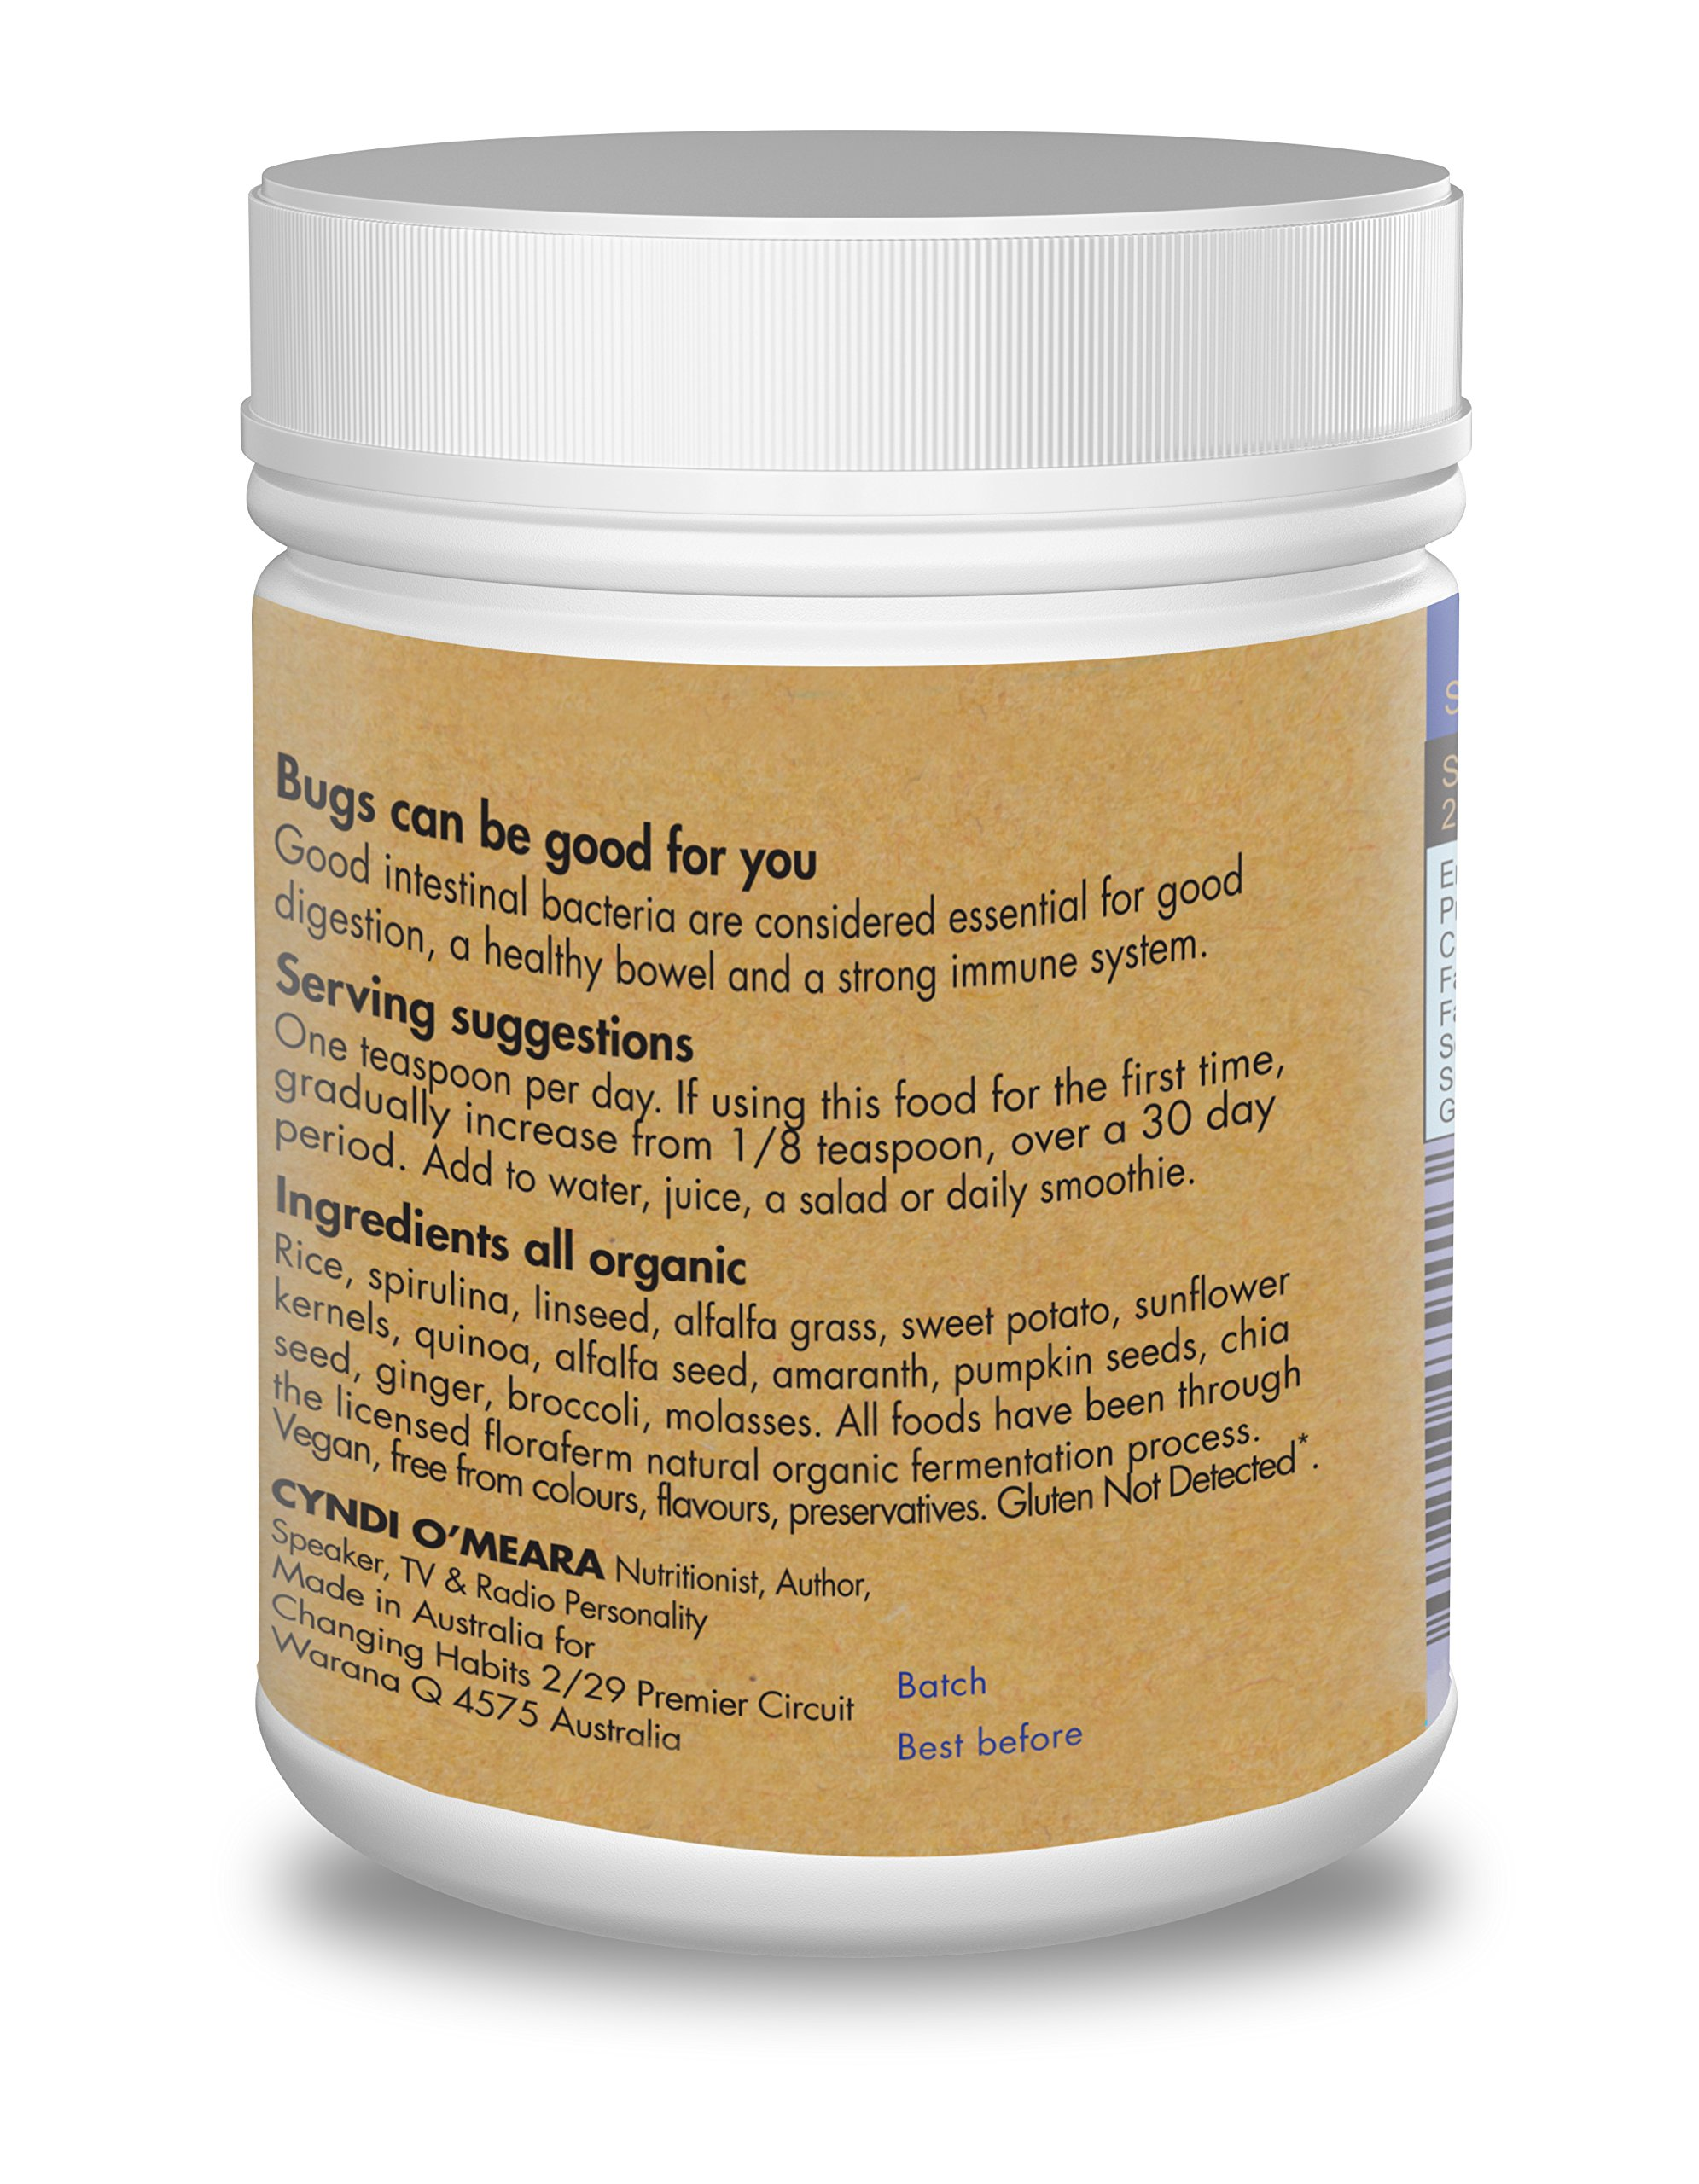 Organic Probiotic Powder With Prebiotic Fiber. 60+ Servings! Soothing, Great Tasting Wholefood Vegan Probiotics and Prebiotics For Women, Men and Kids by Changing Habits (Image #7)